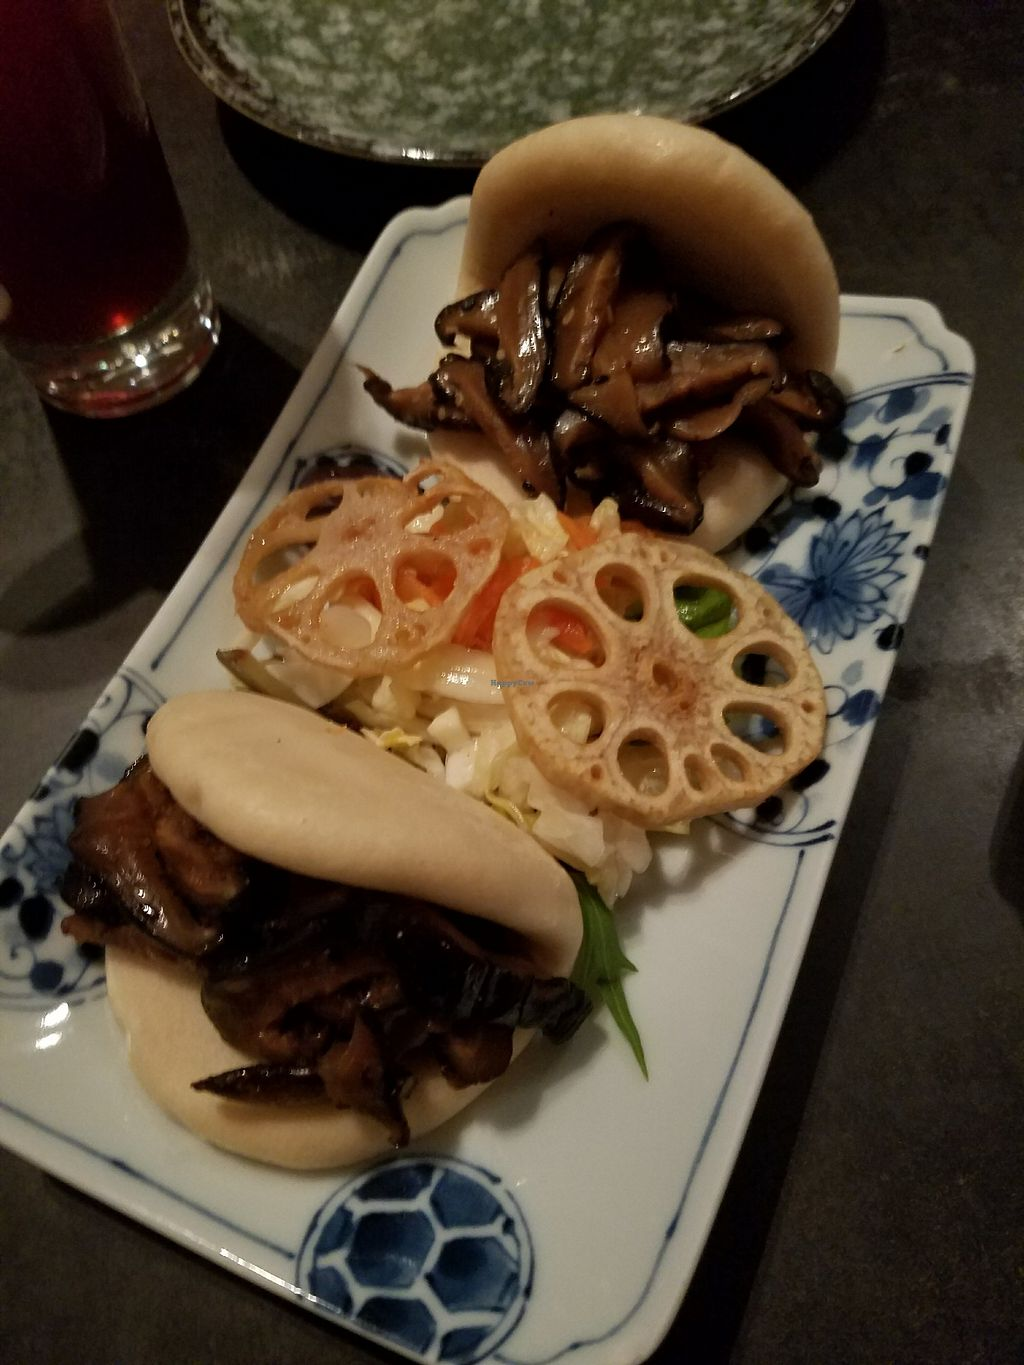 """Photo of DC Noodles  by <a href=""""/members/profile/MerryRose"""">MerryRose</a> <br/>mushroom bun with pickled vegetables <br/> December 27, 2017  - <a href='/contact/abuse/image/92005/339628'>Report</a>"""